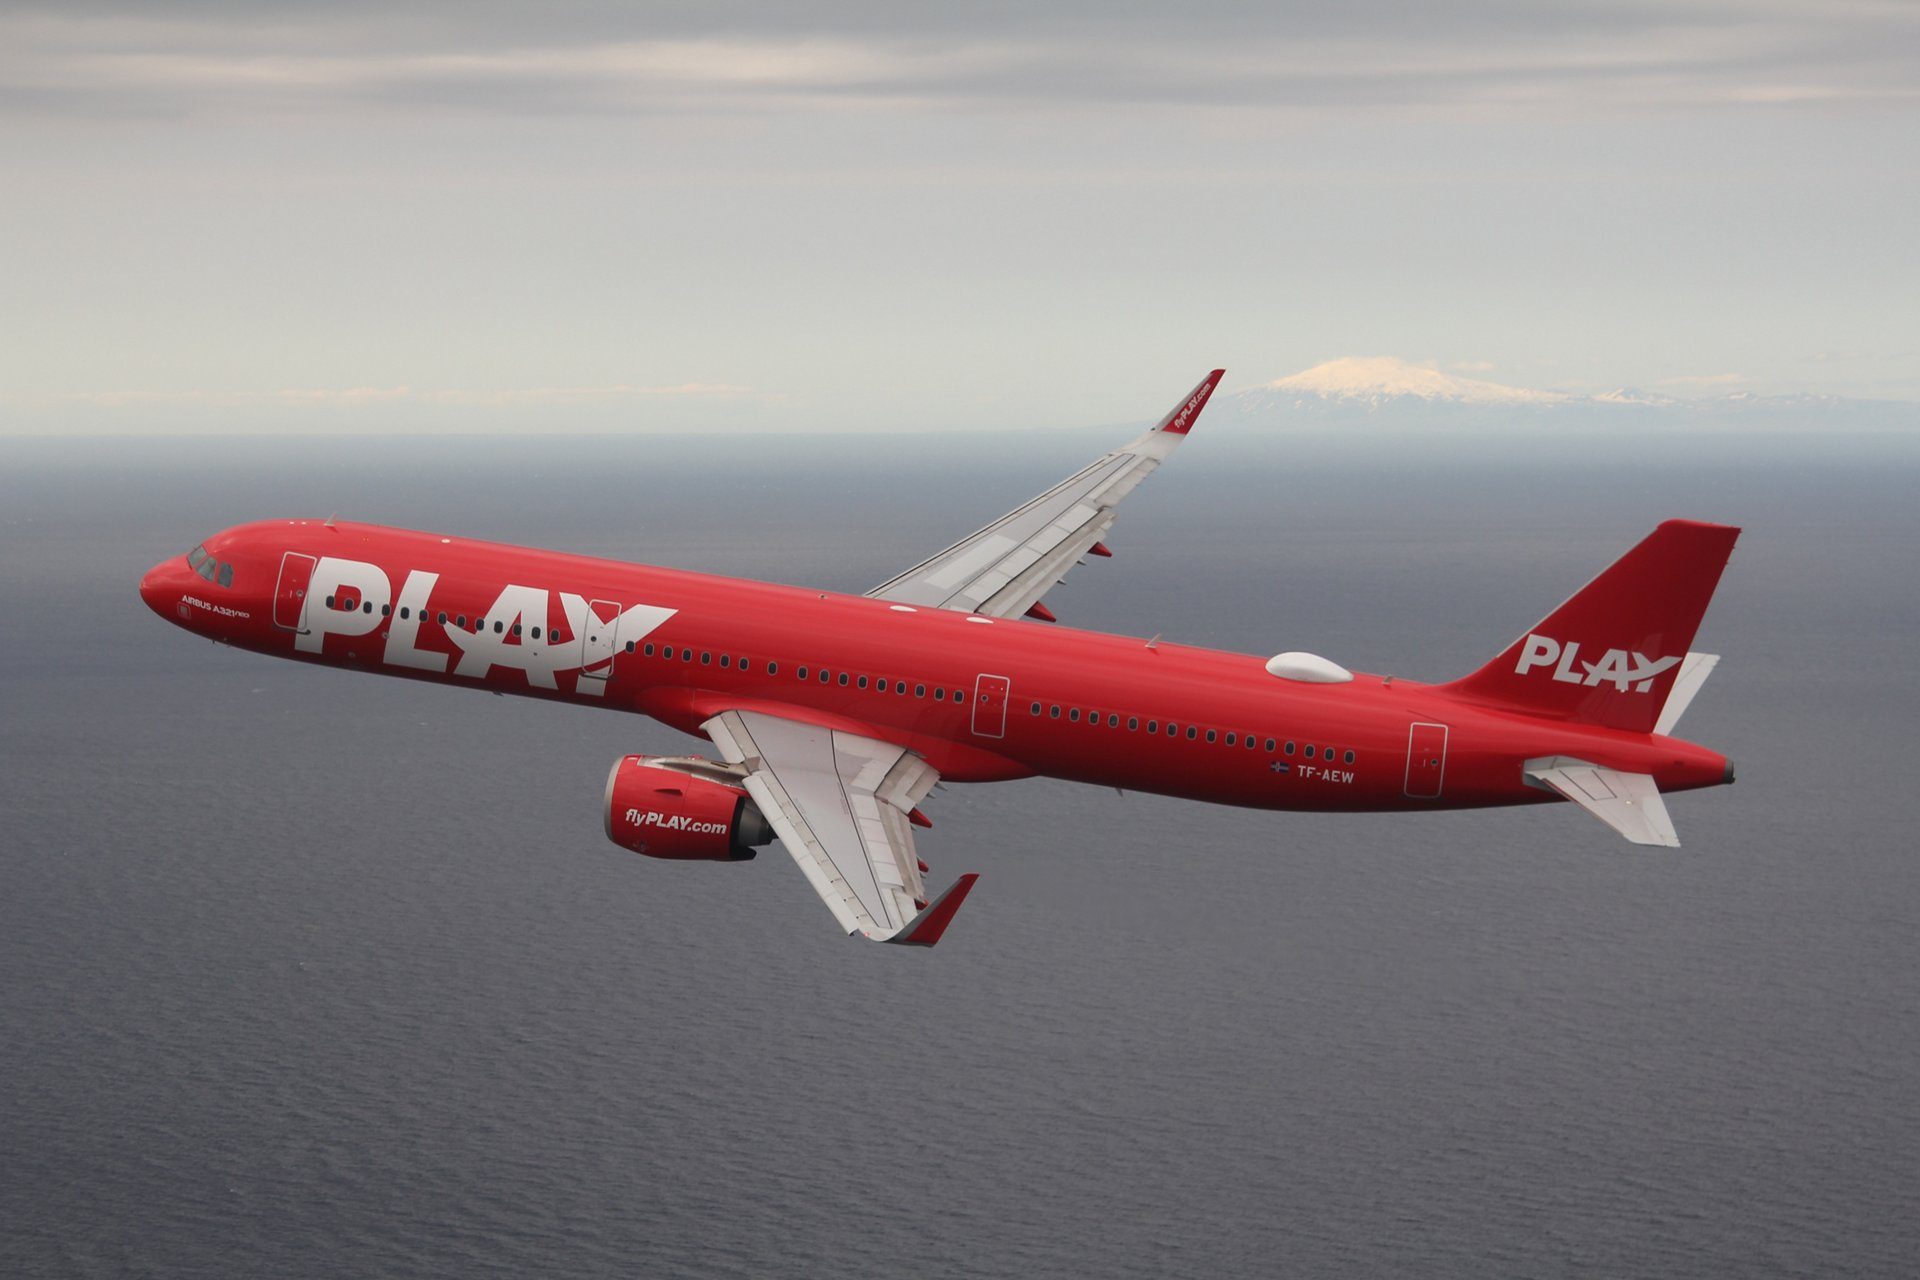 PLAY, the Iceland based start-up airline that started operations in June 2021, has signed a long-term deal with NAVBLUE for its innovative OCC suite. NAVBLUE's Plan & Control suite covers Flight Planning, Flight Following, Operations Control, Crew Management and Aircraft Performance. Additionally, PLAY has also signed on for NAVBLUE's electronic flight bag solution Flysmart+.